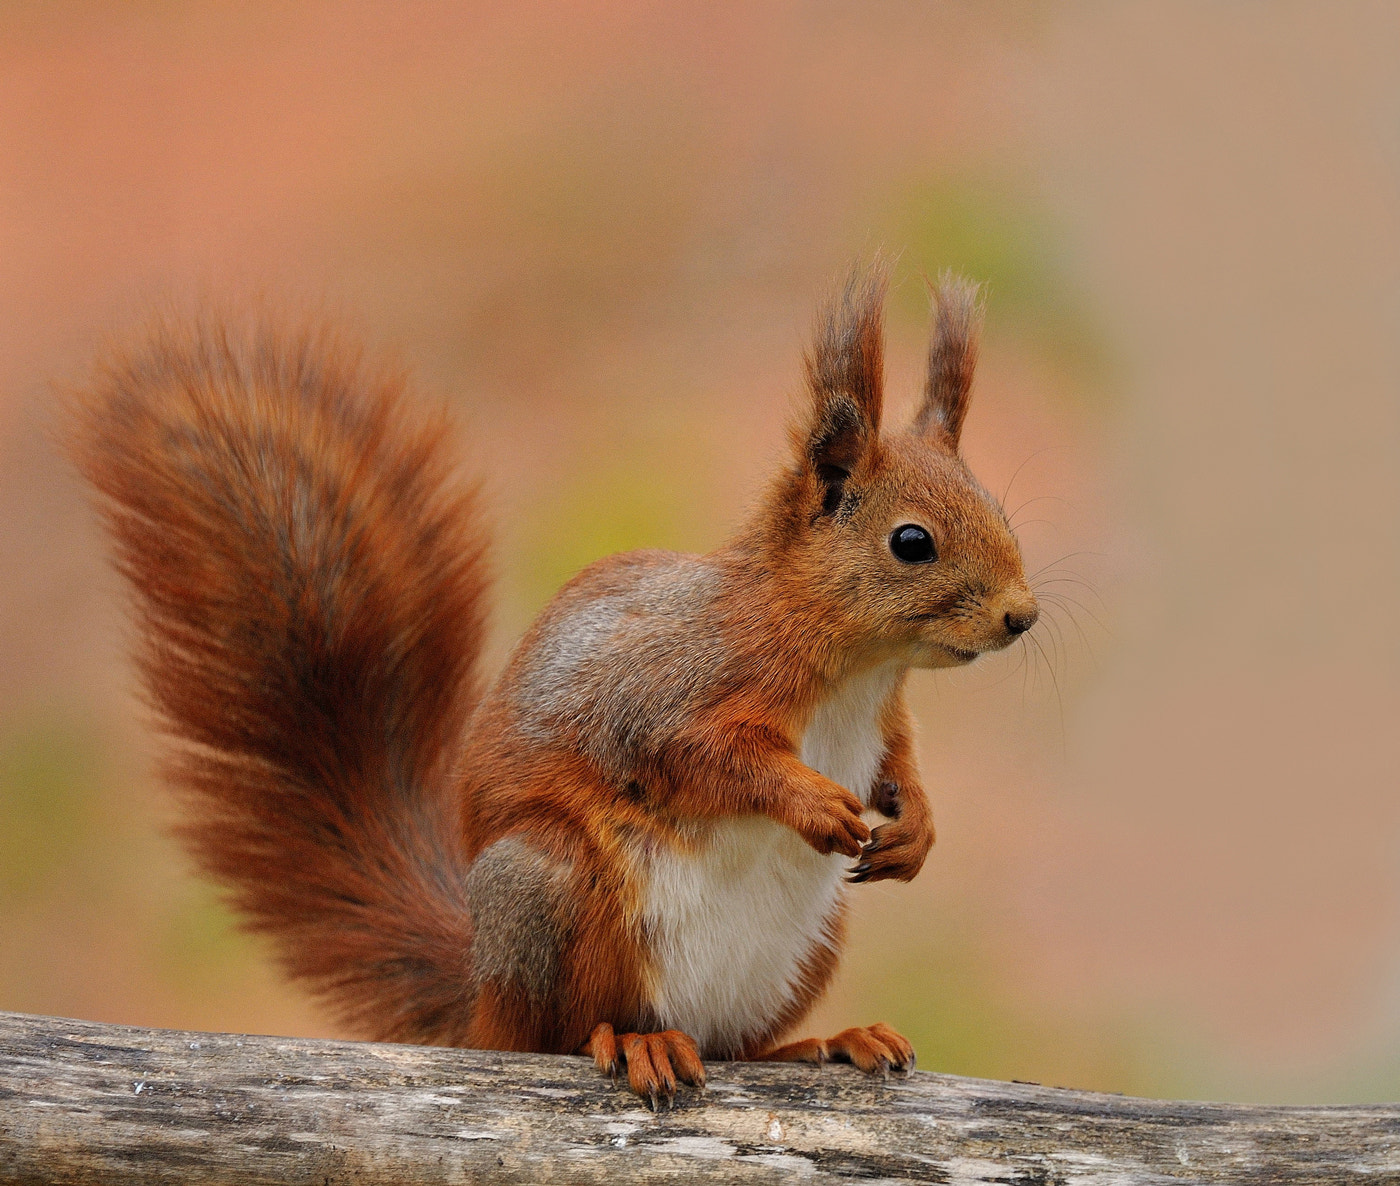 Photograph Squirrel by Ronnie Bergström on 500px